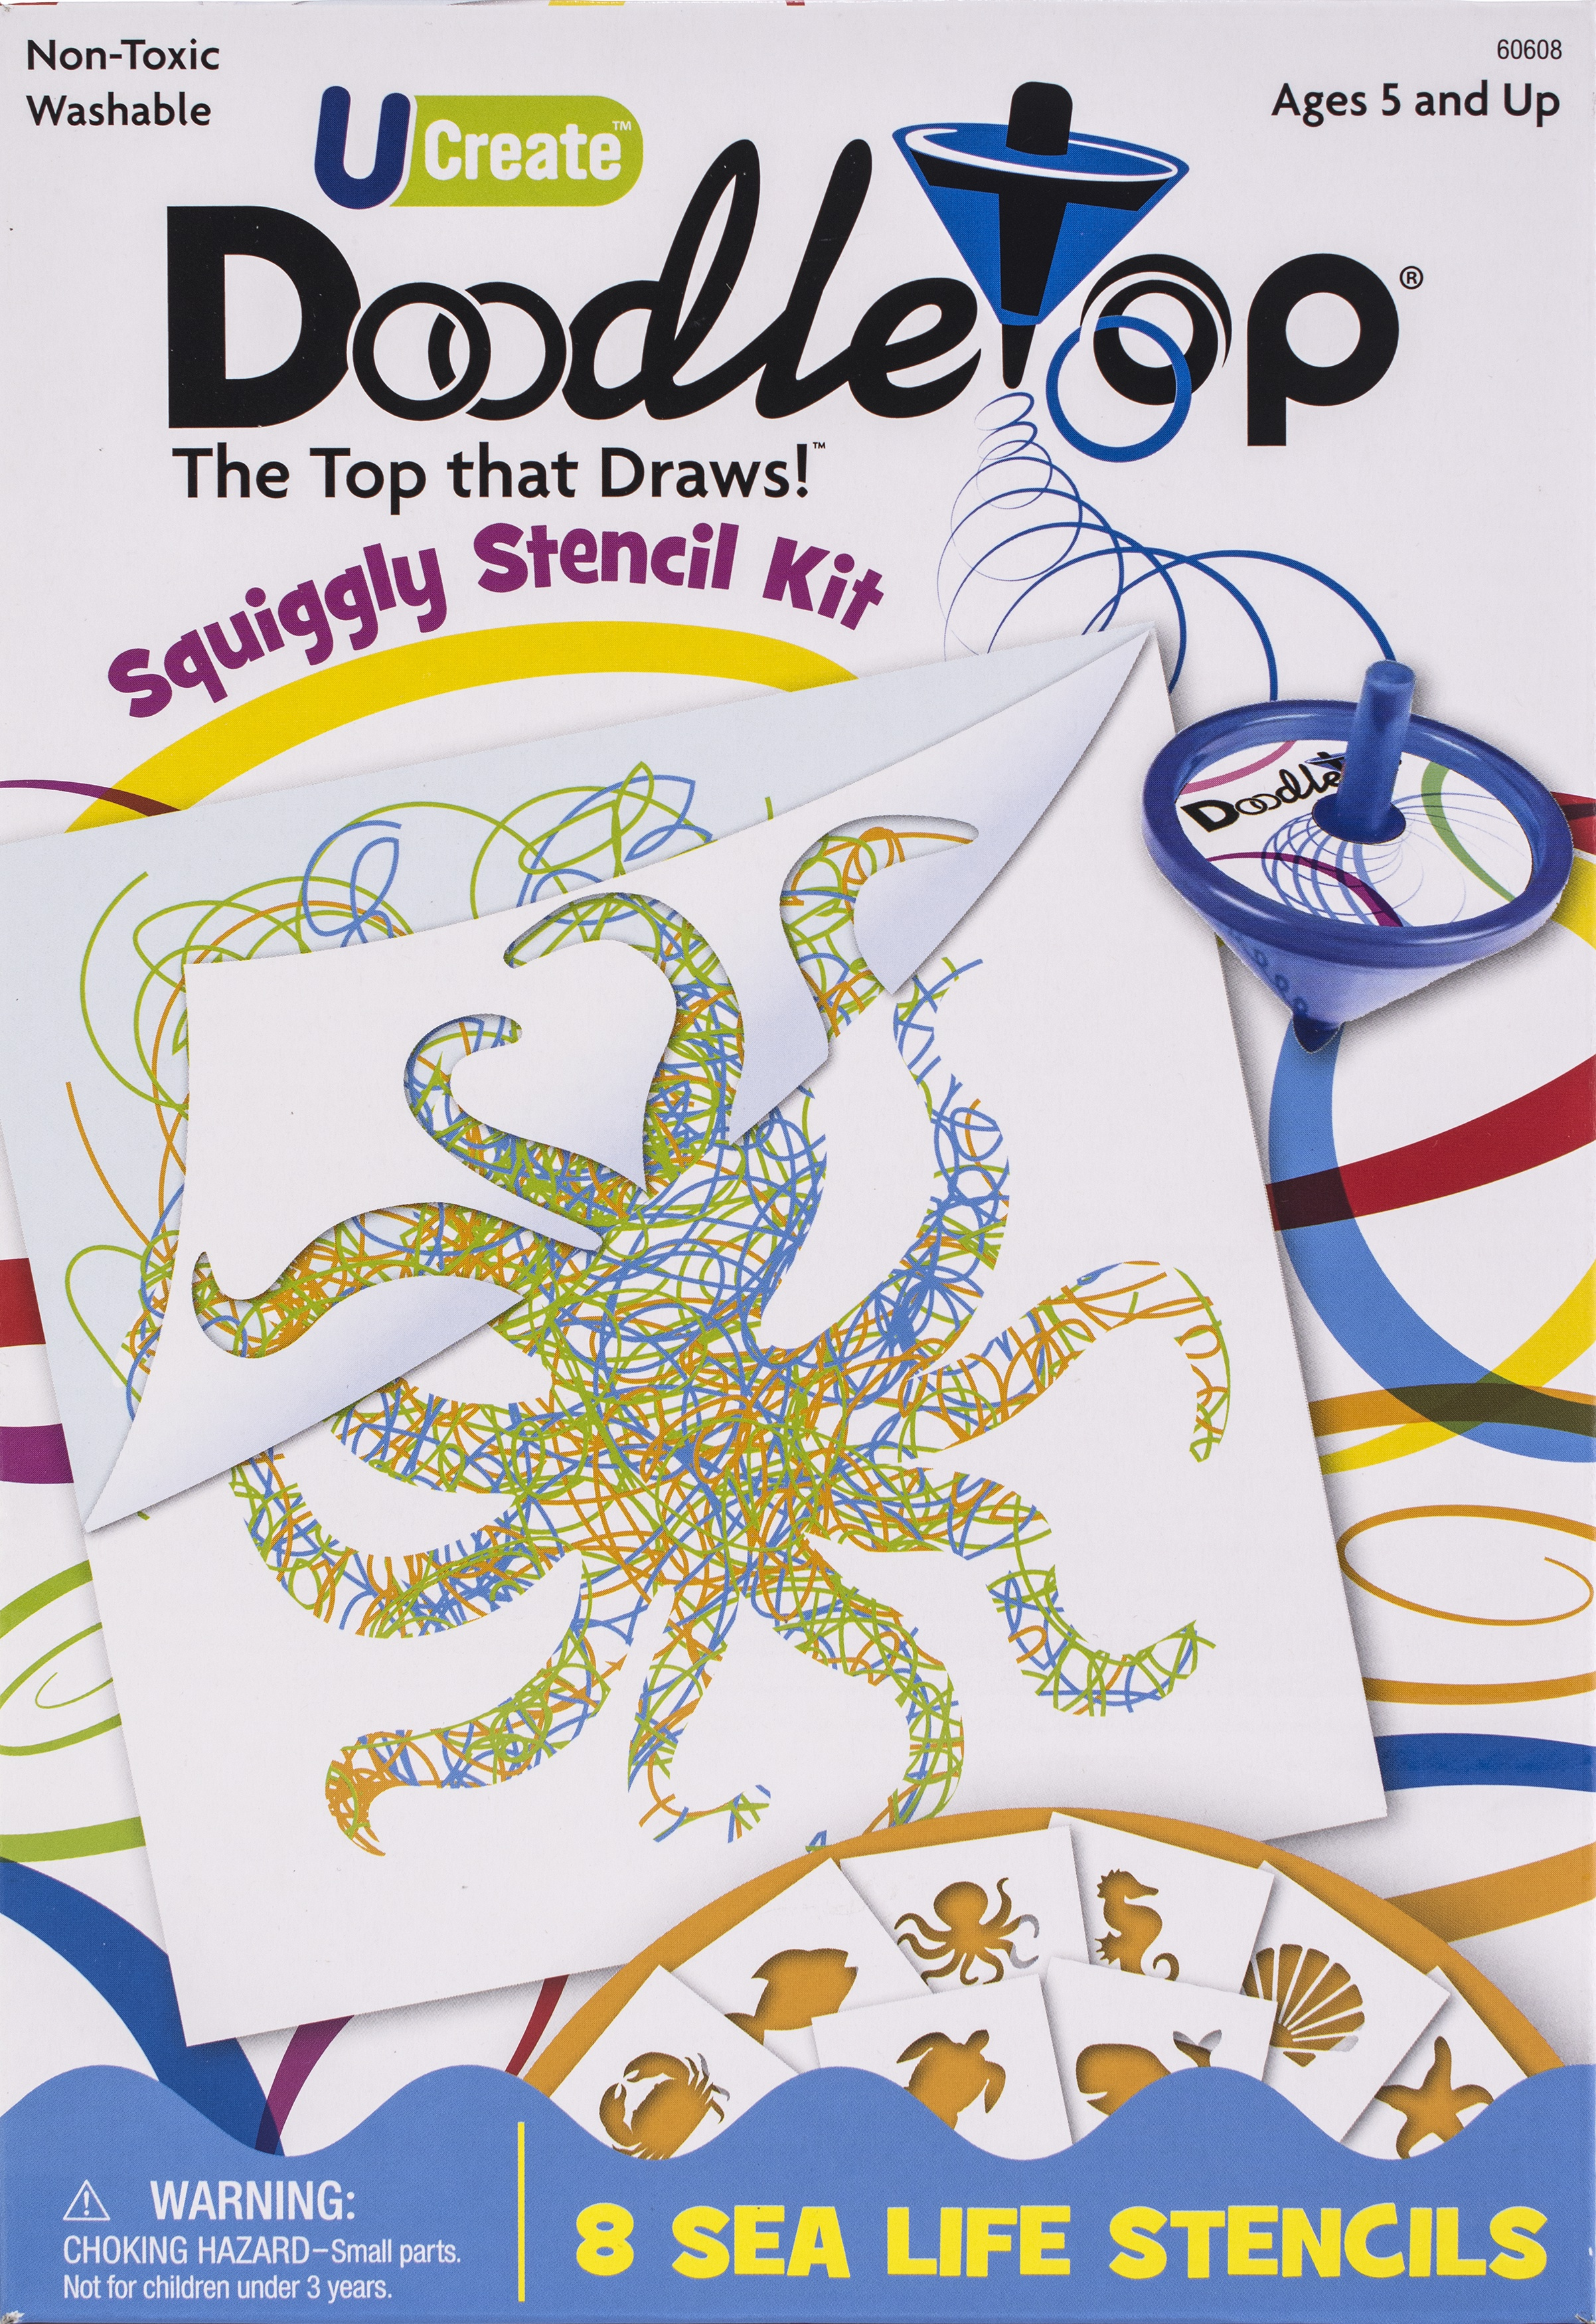 UCreate Doodletop Squiggly Stencil Kit-Sea Life